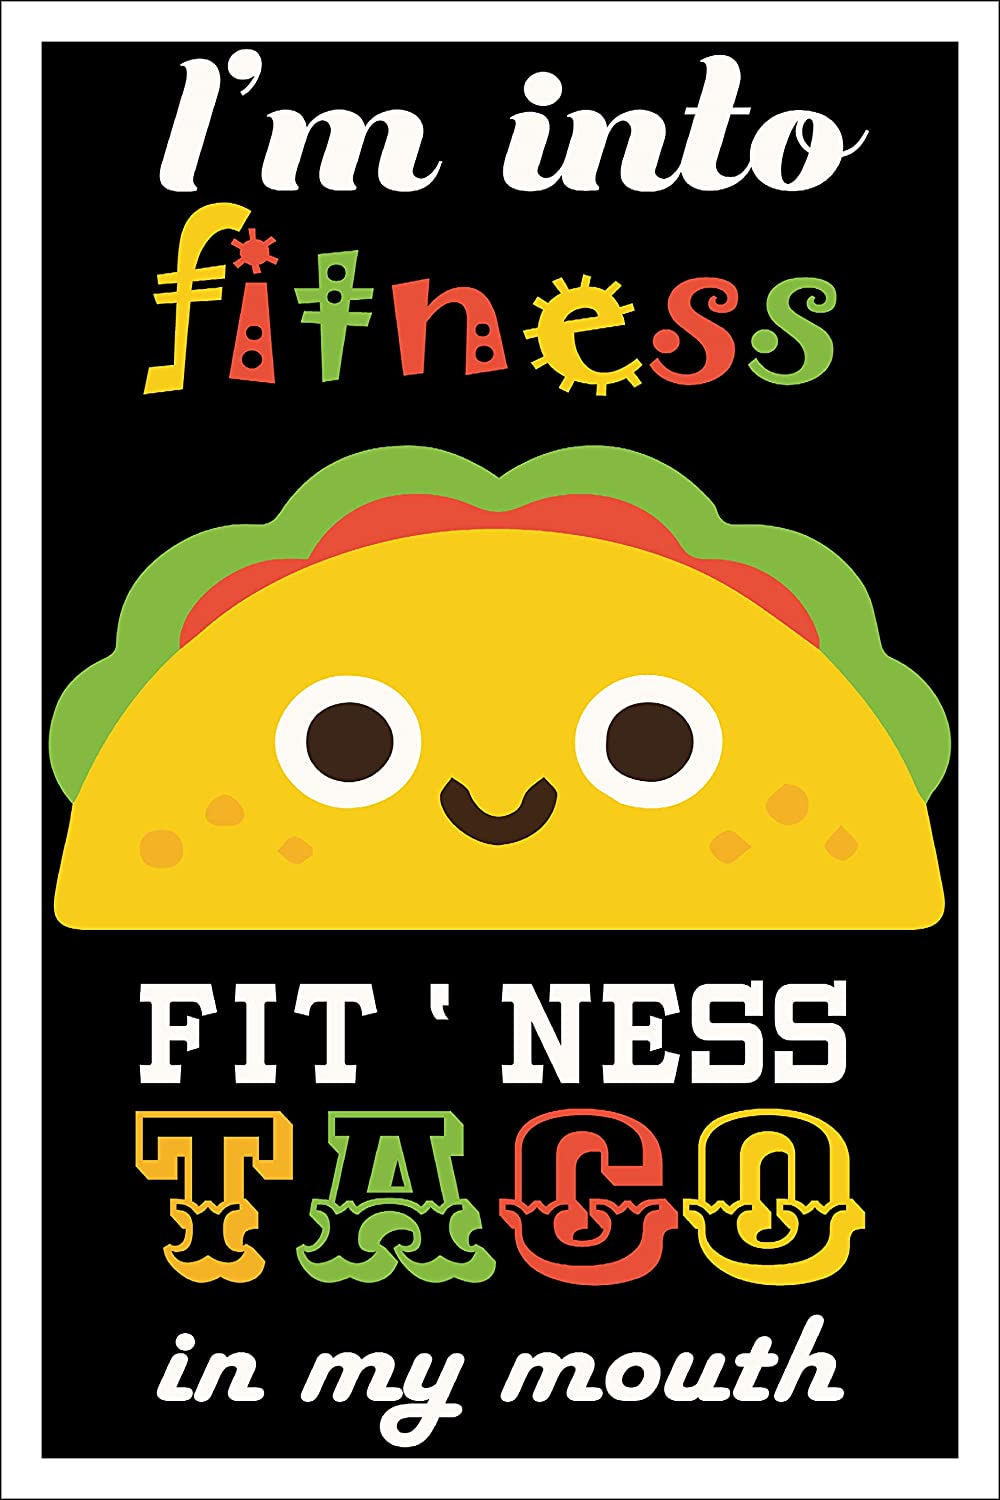 """Spitzy's I'm Into Fitness Fit'ness Taco in My Mouth Funny Workout Pun Poster (12"""" x 18"""" Dimensions Include a White .5"""" Border)"""